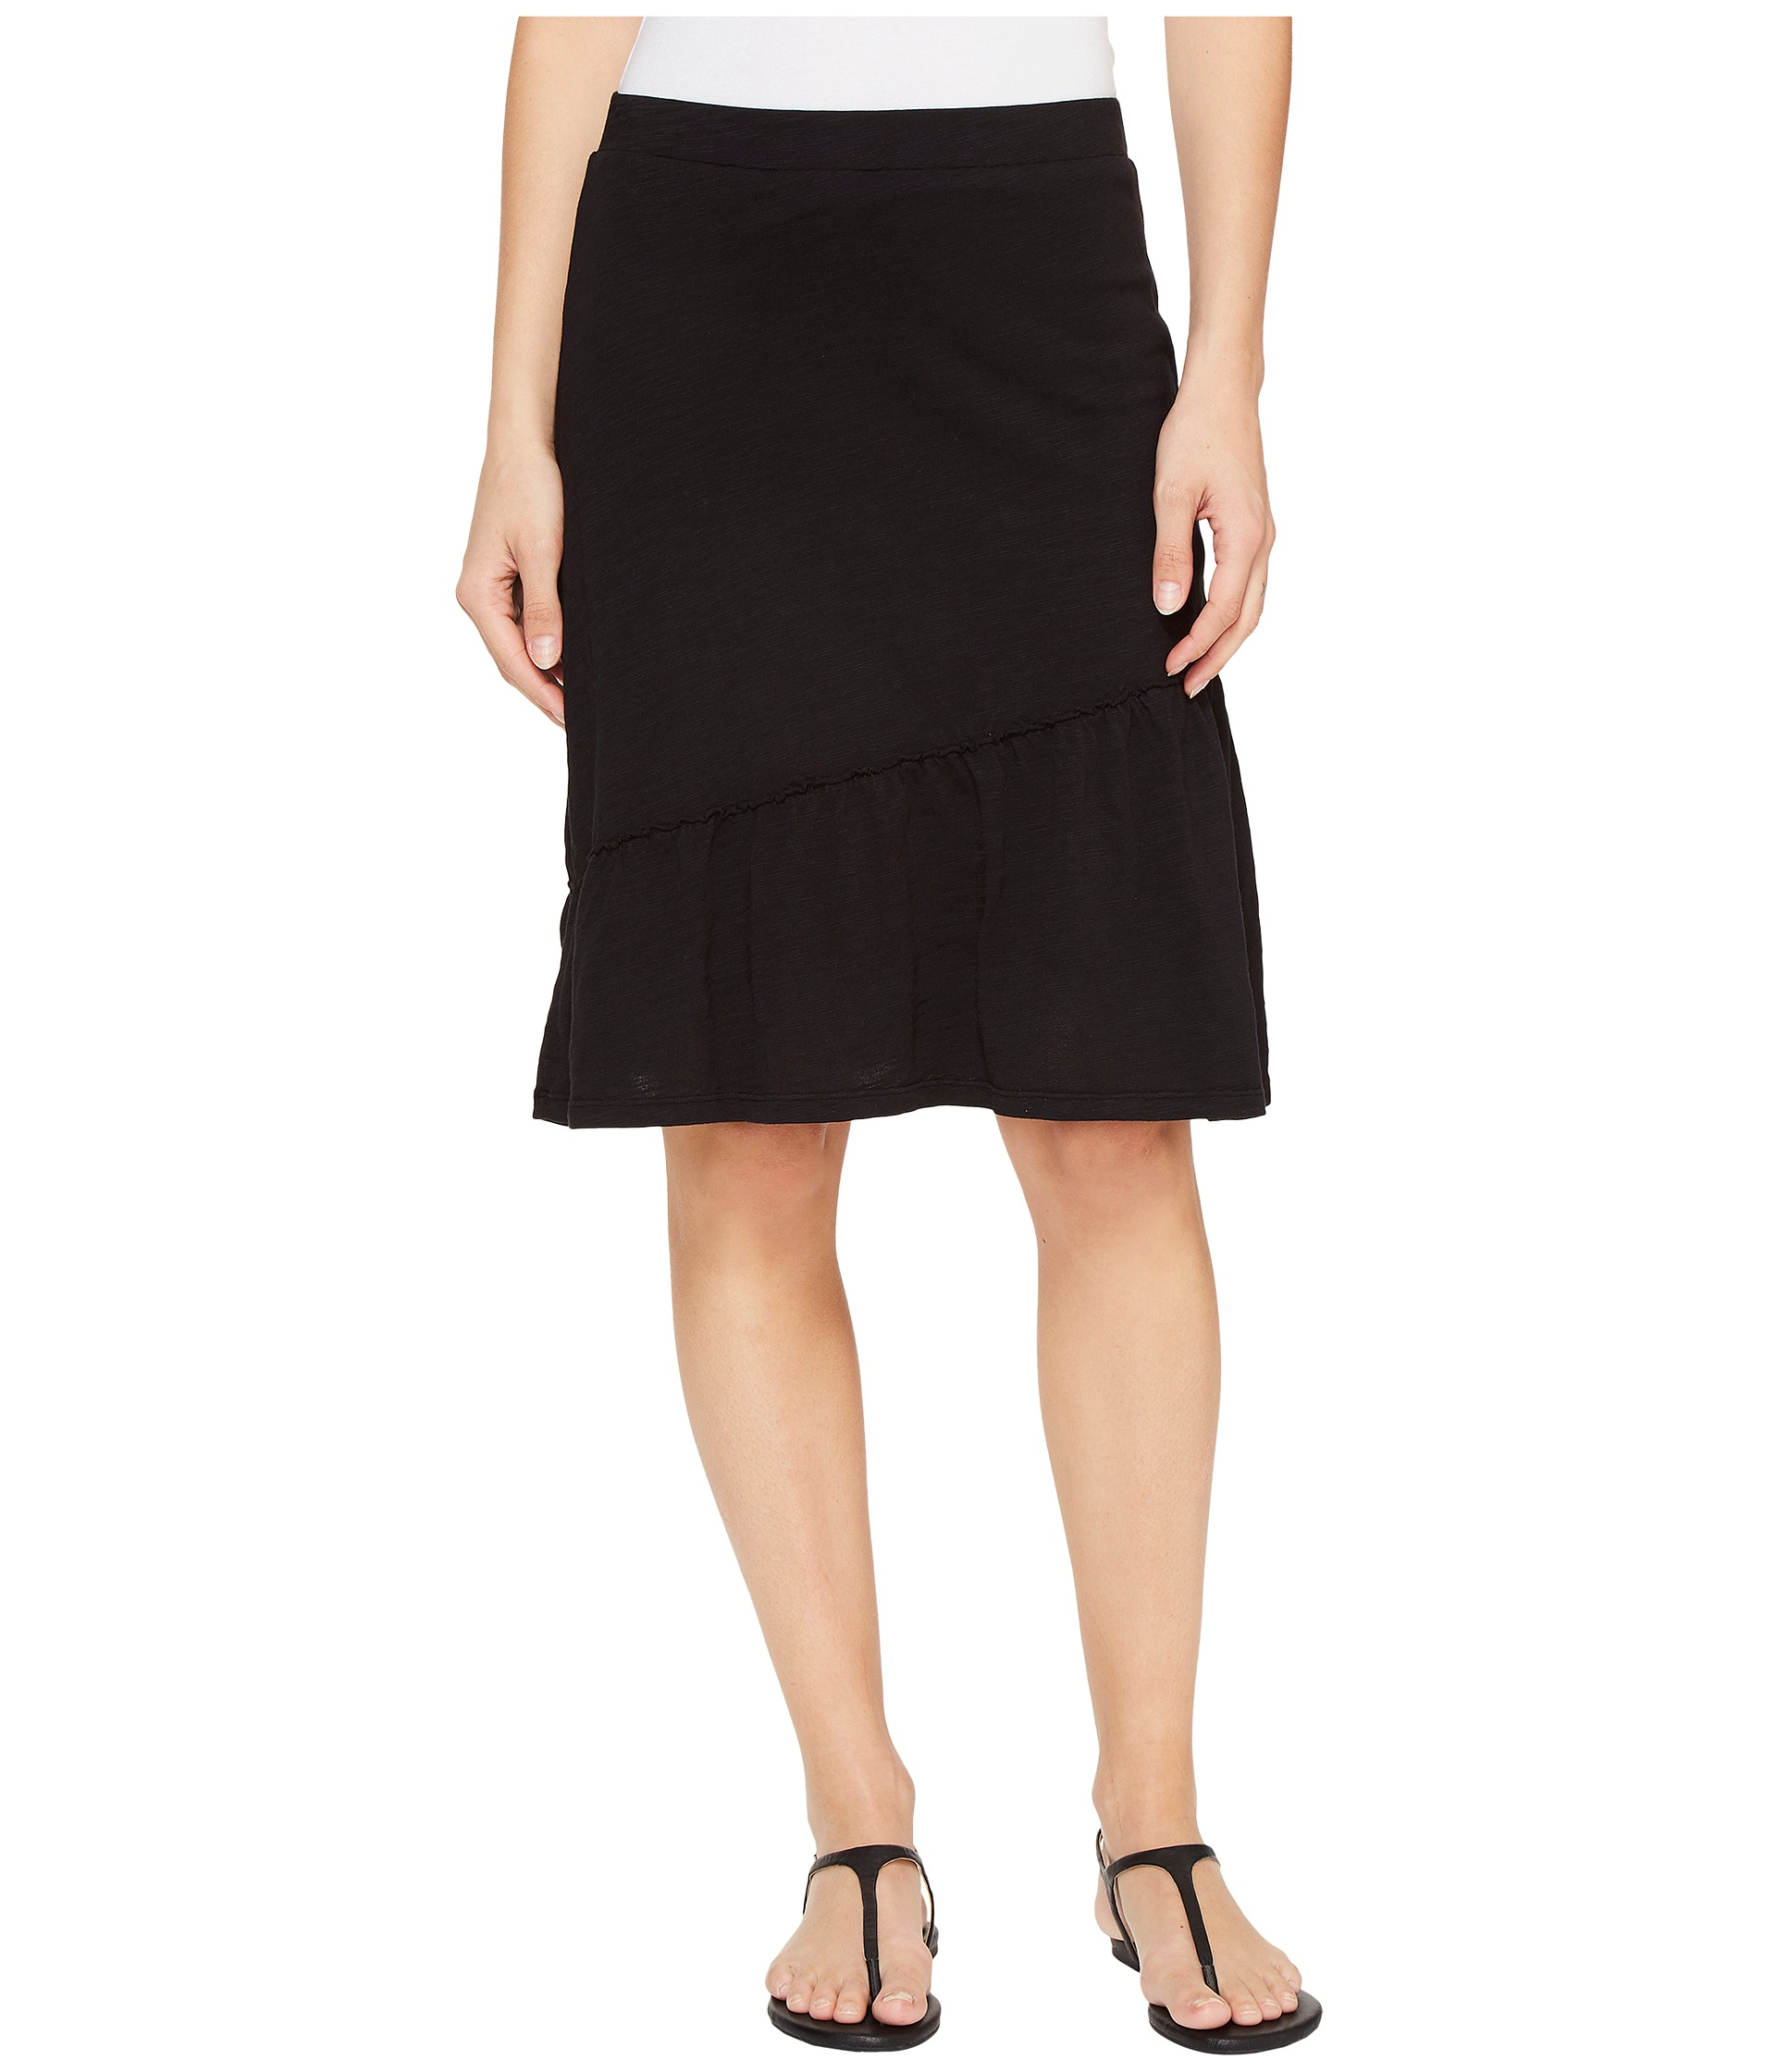 Shop for womens jersey skirt online at Target. Free shipping on purchases over $35 and save 5% every day with your Target REDcard.